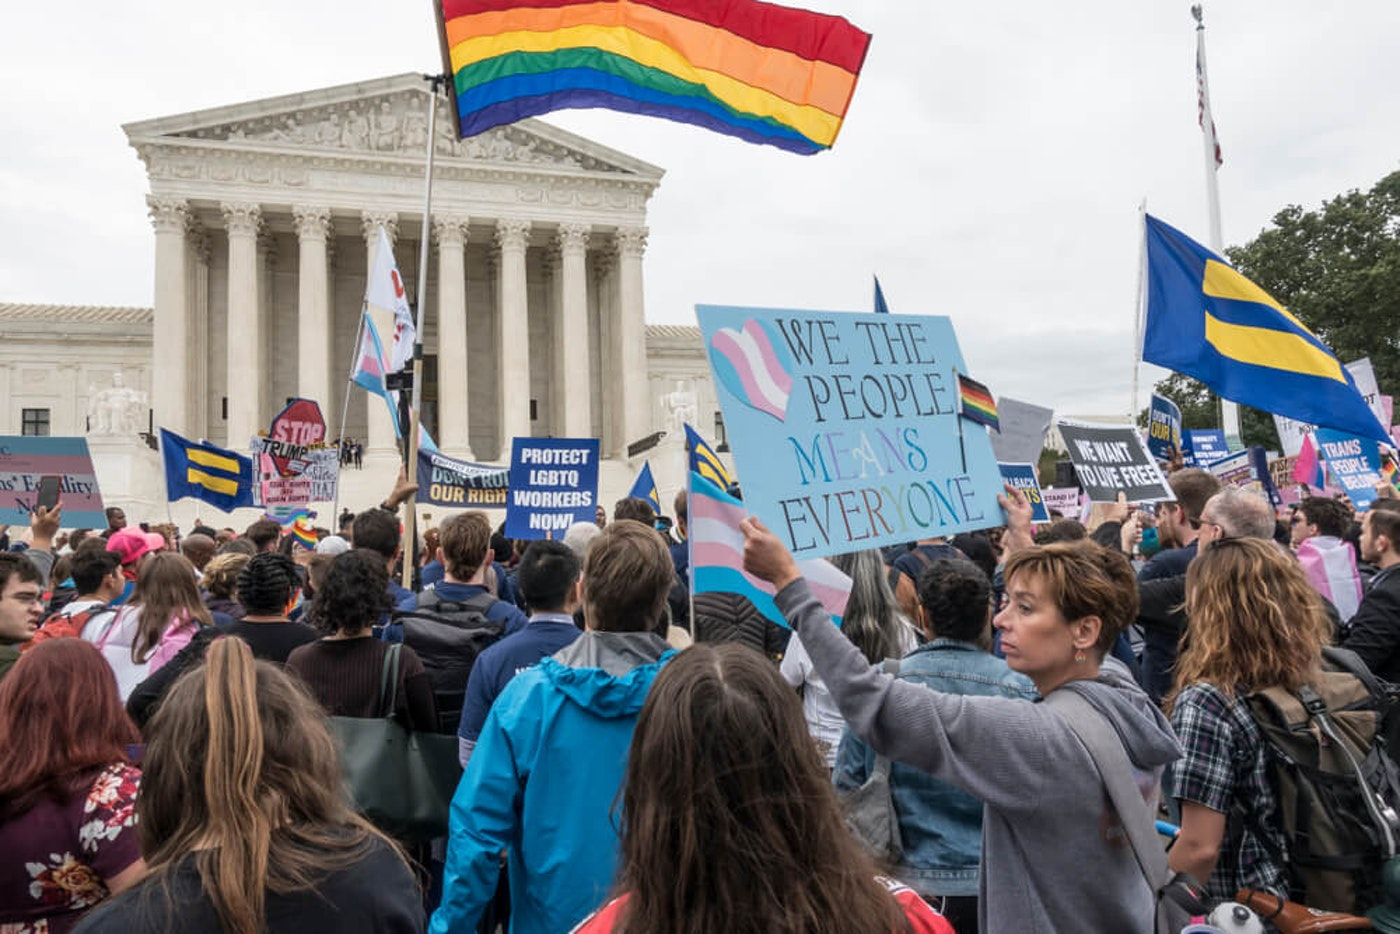 WASHINGTON, DC - OCT. 8, 2019: Rally for LGBTQ rights outside Supreme Court as Justices hear oral arguments in three cases dealing with discrimination in the workplace because of sexual orientation (Image via Shutterstock)